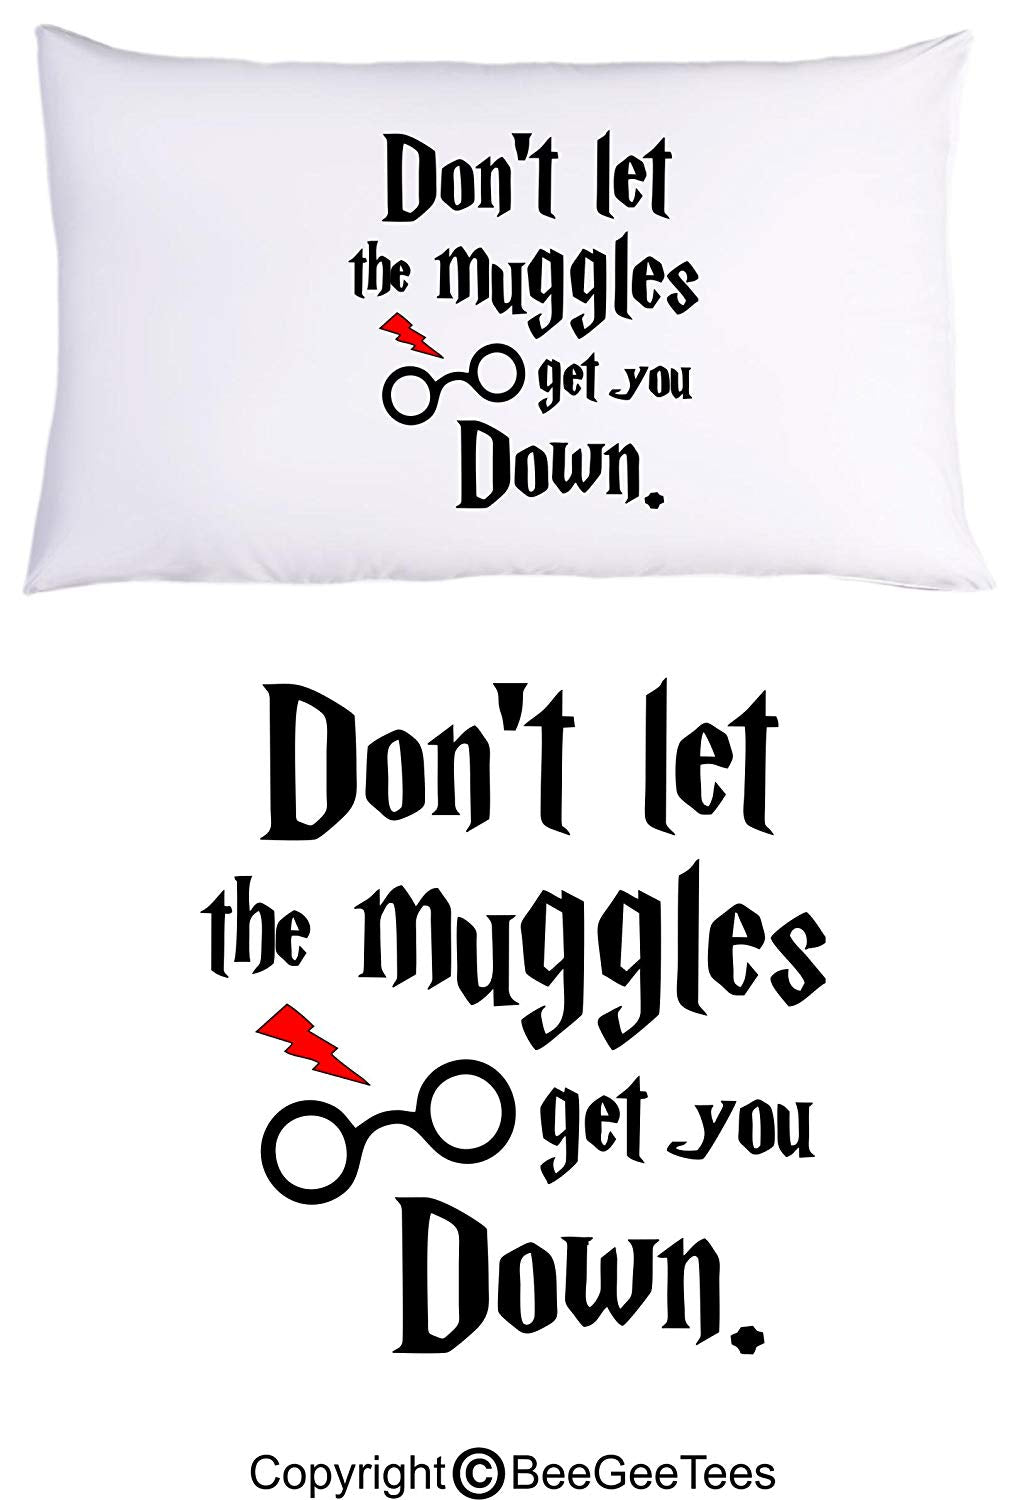 Don't Let The Muggles Get You Down Funny Harry Potter Inspired Pillowcase For Wizards by BeeGeeTees (1 Queen Pillowcase)